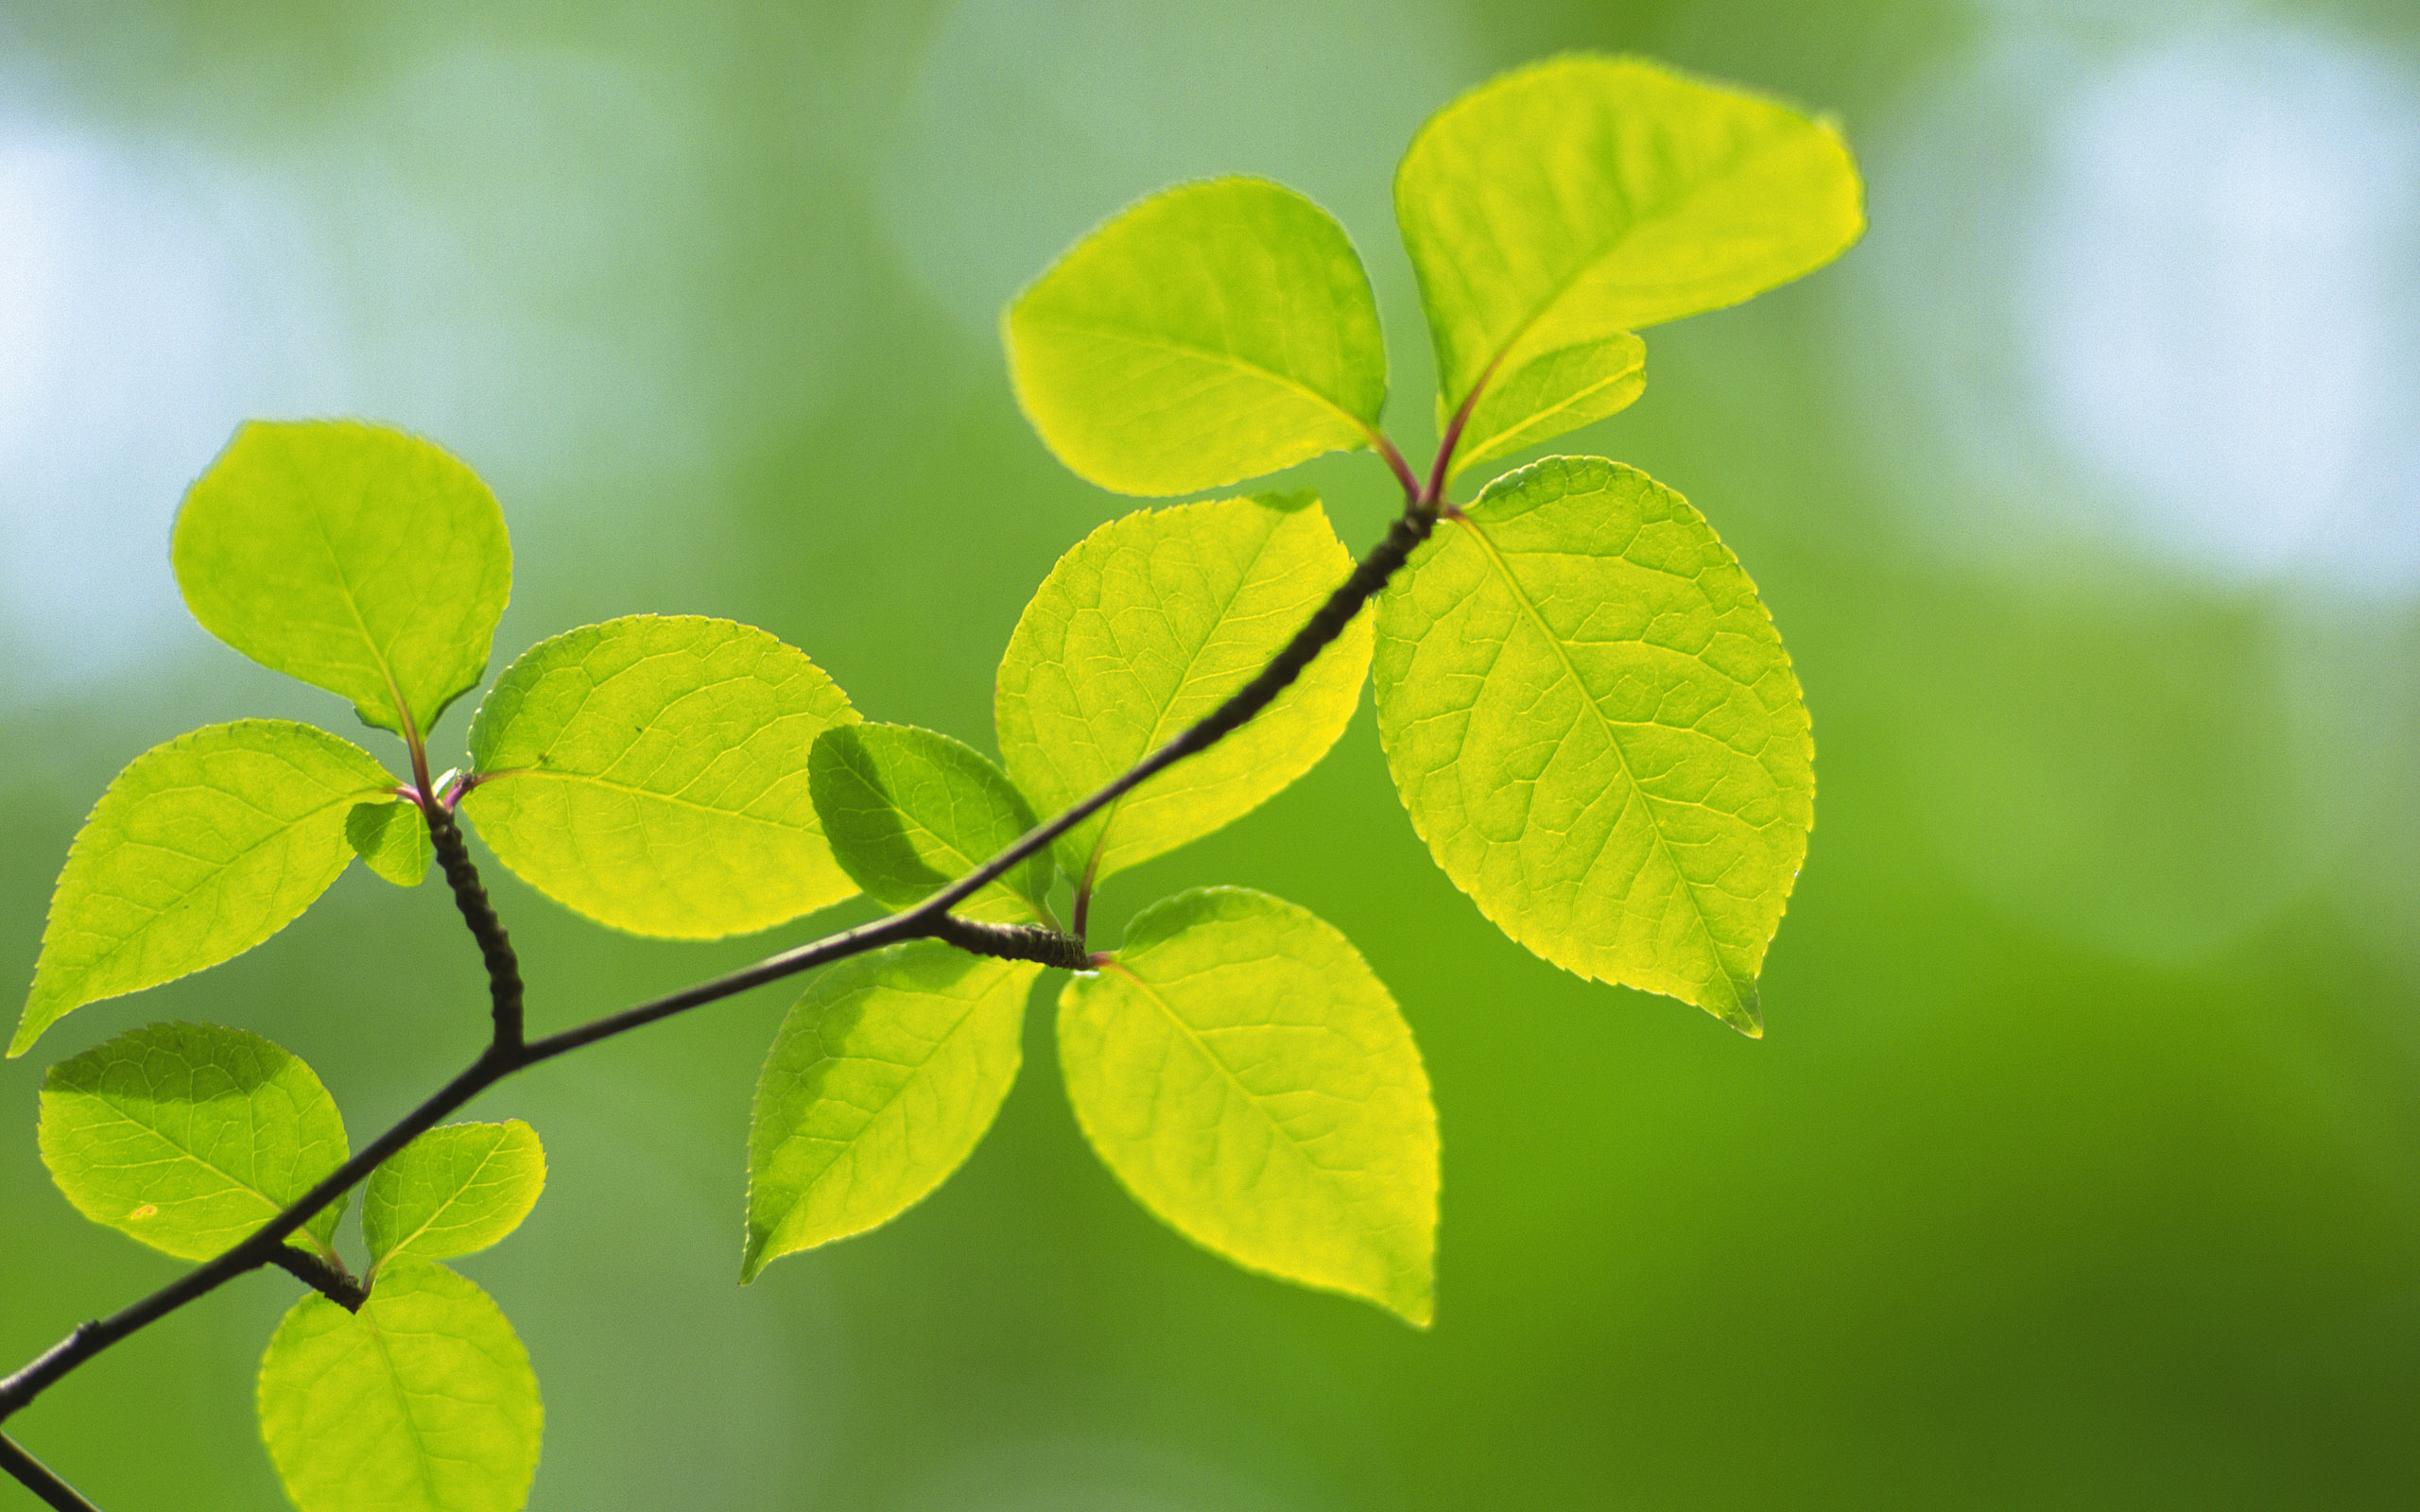 green leaves amazing free download hd desktop background pictures